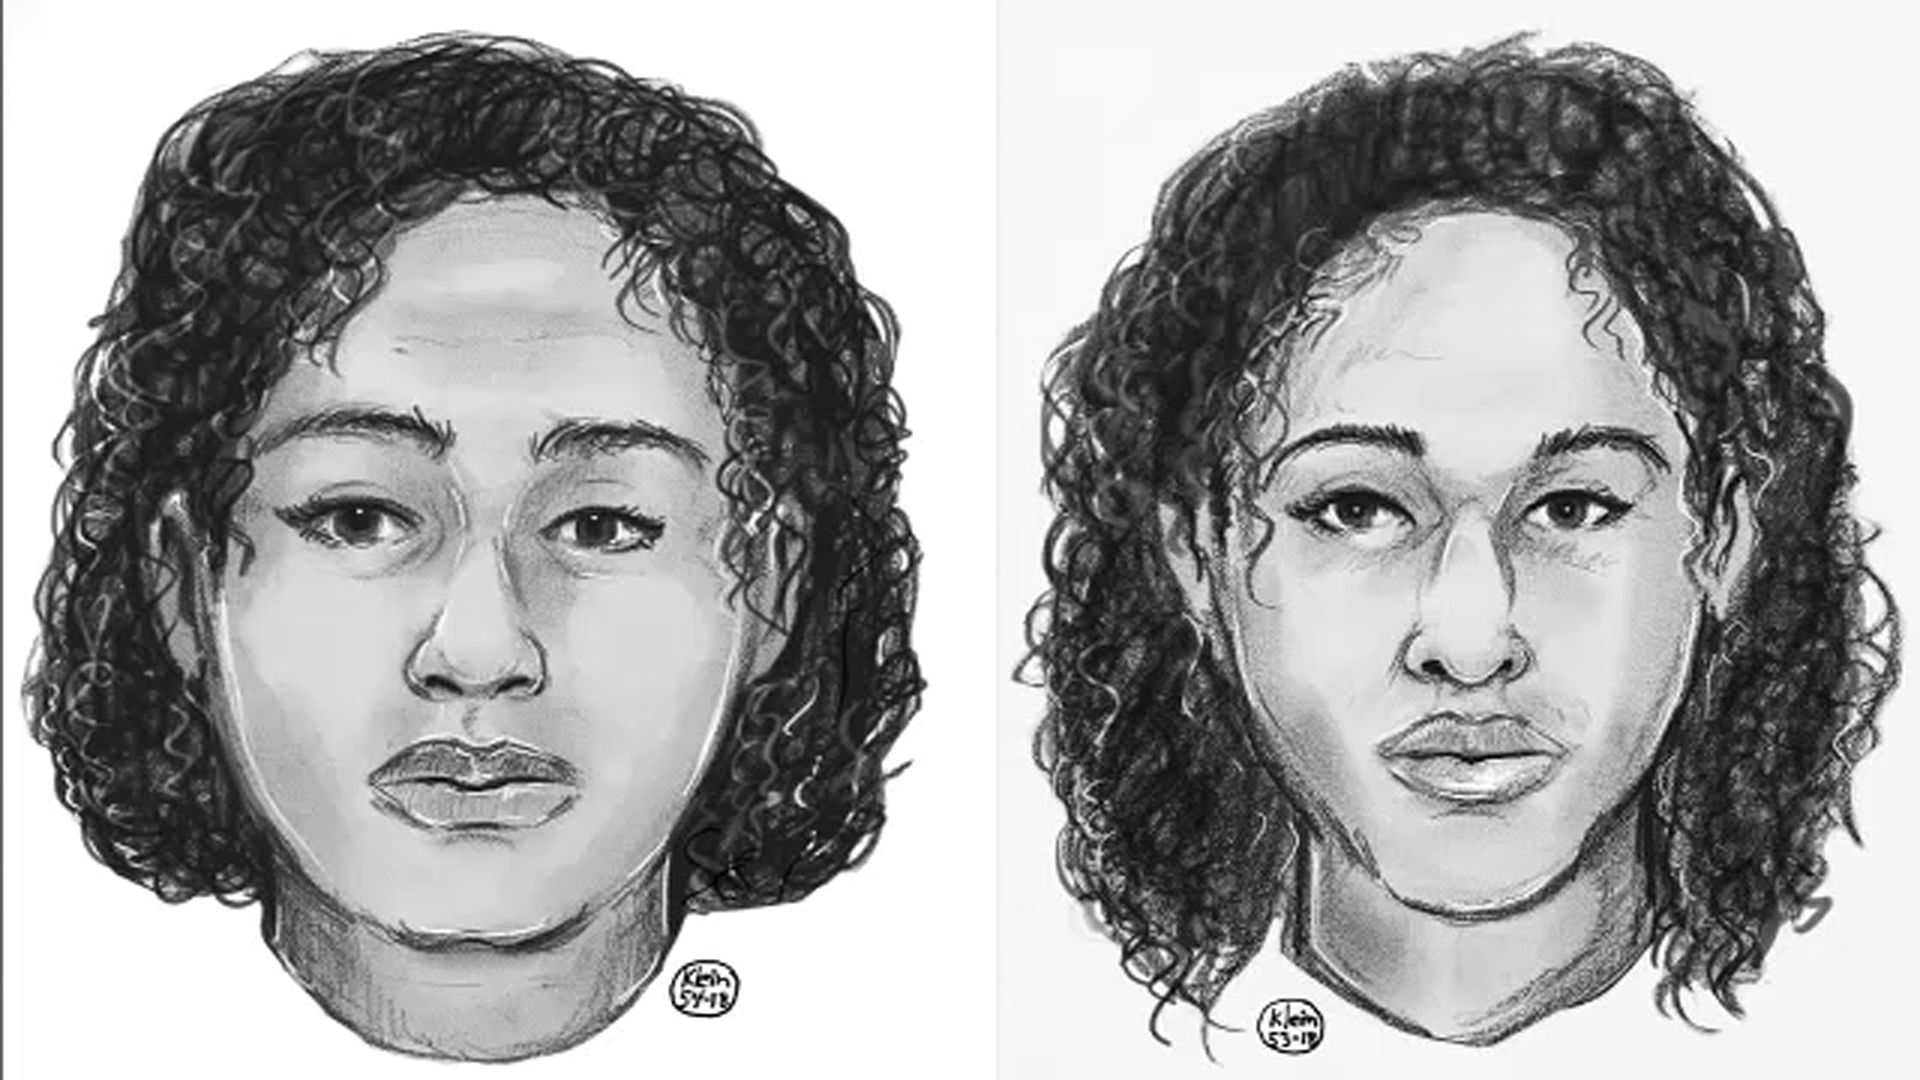 Two Women Found Duct-Taped Together in NYC Identified as Saudi Sisters